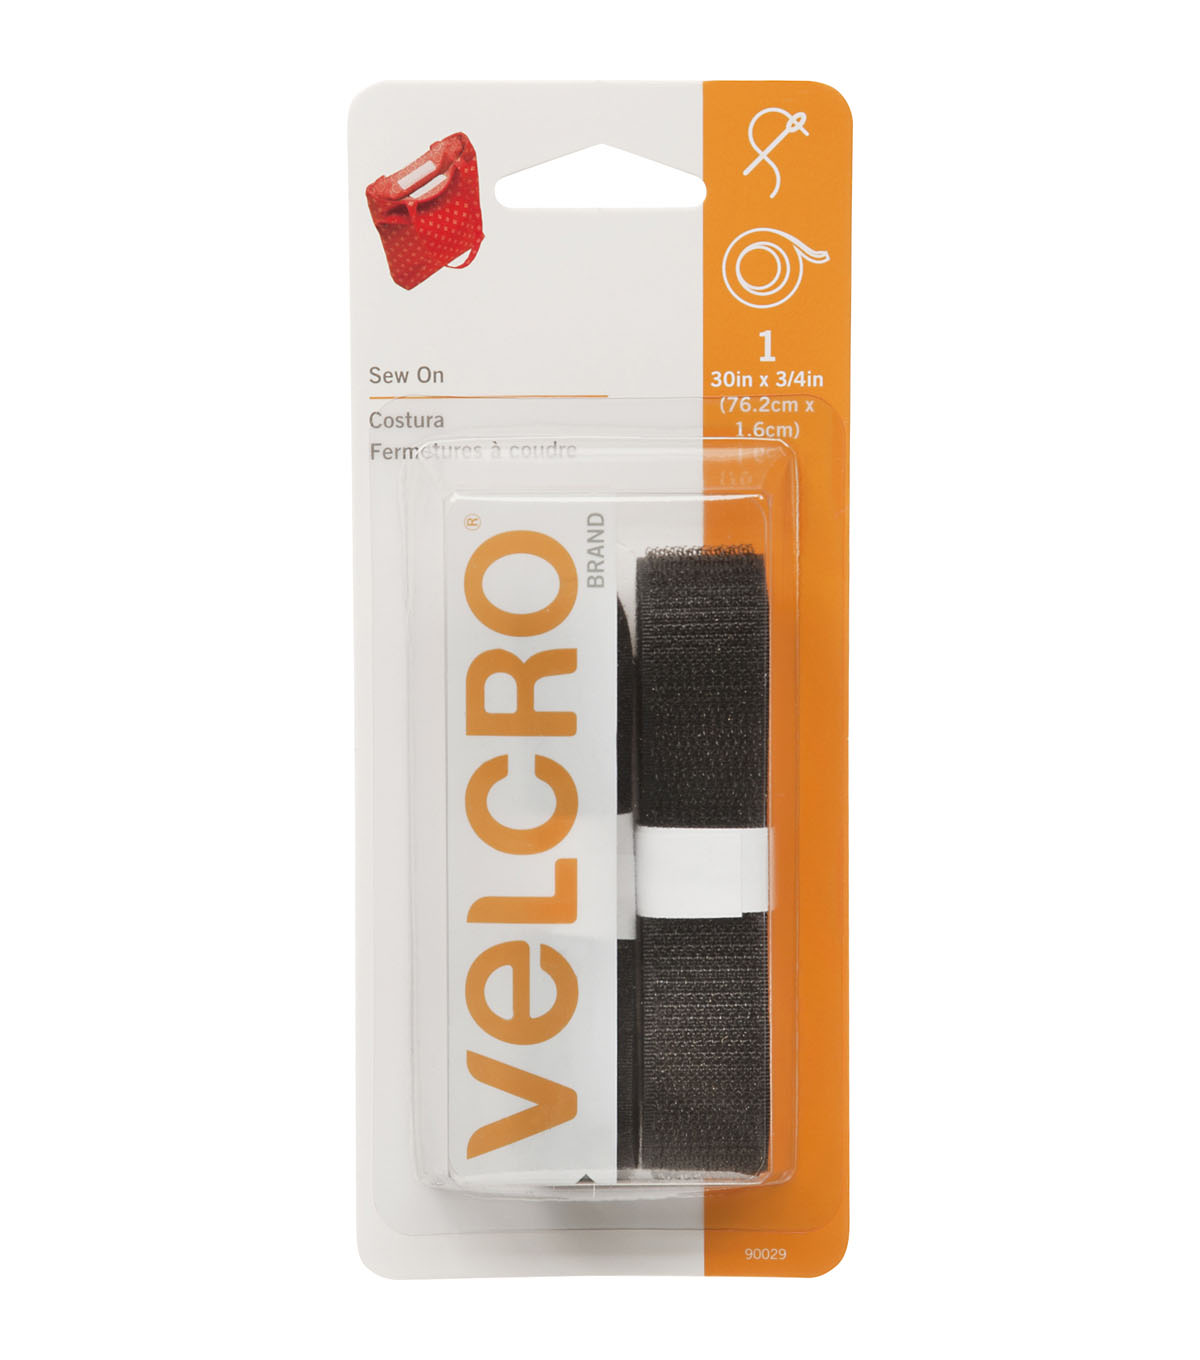 VELCRO Brand 0.75\u0027\u0027 x 30\u0027\u0027 Sew-On Tape